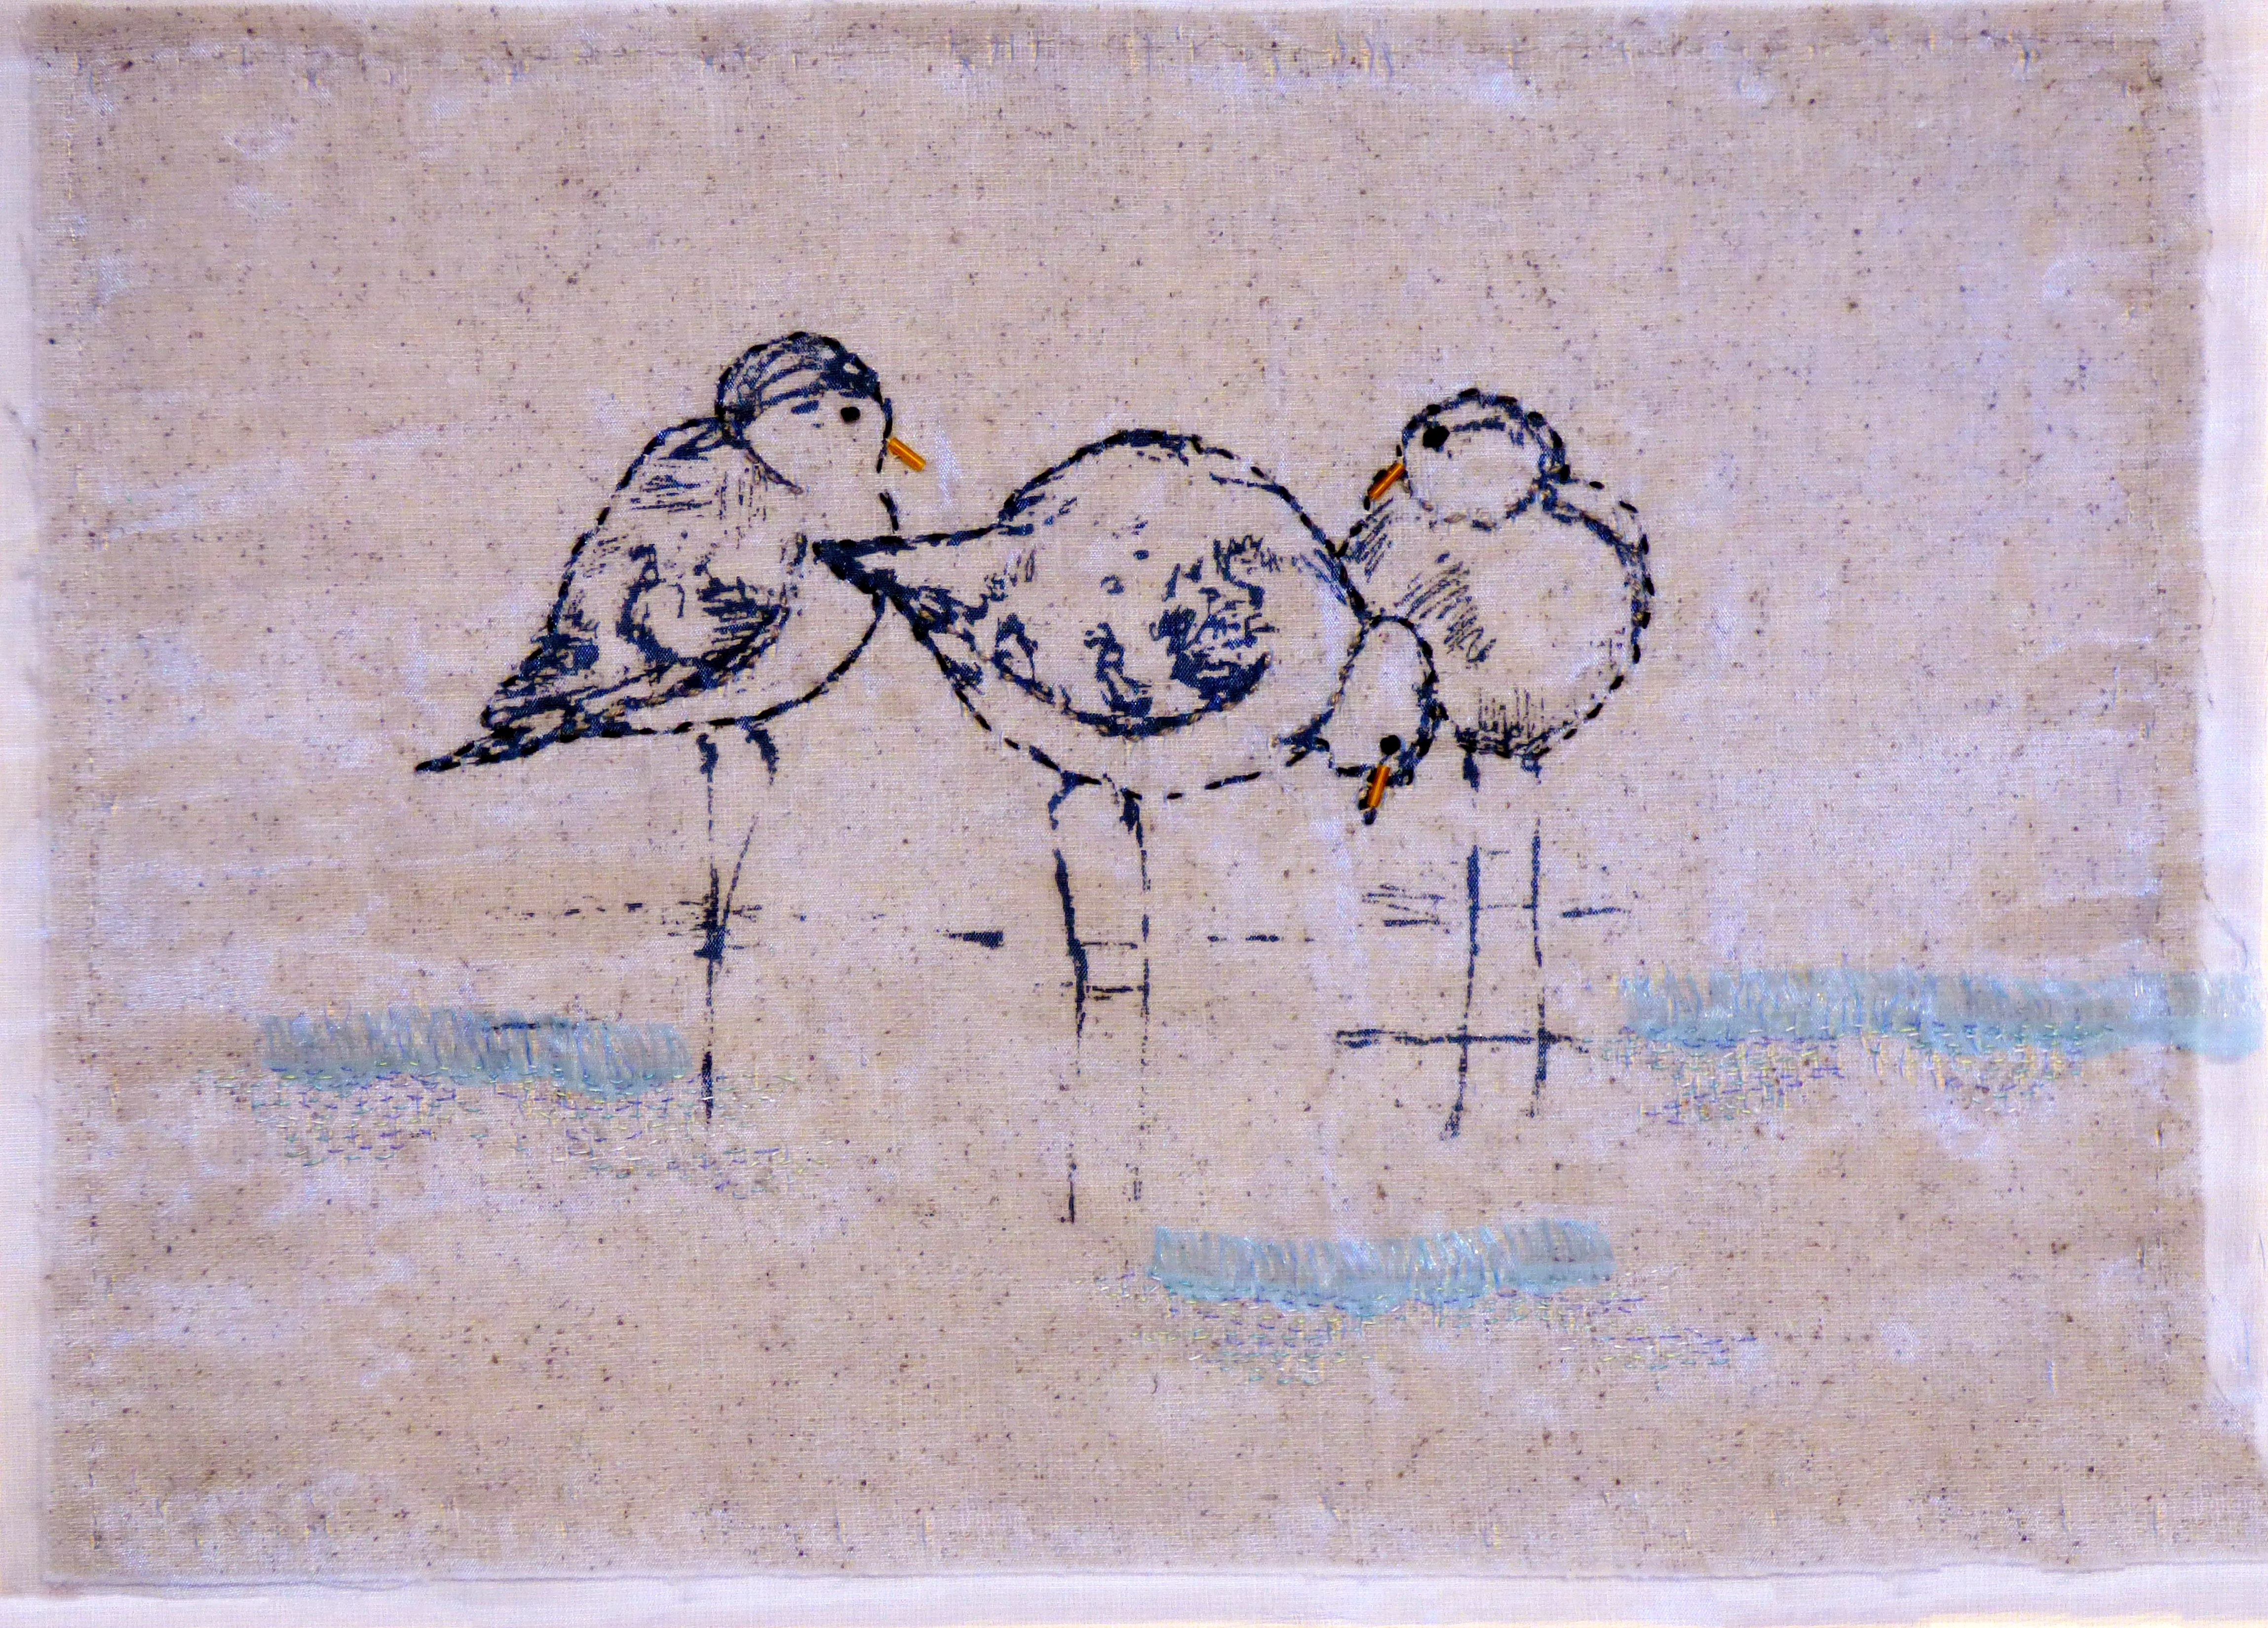 THE END OF A PERFECT DAY by Pamela Headon, N.Walse EG, Thermofax printing with hand stitch